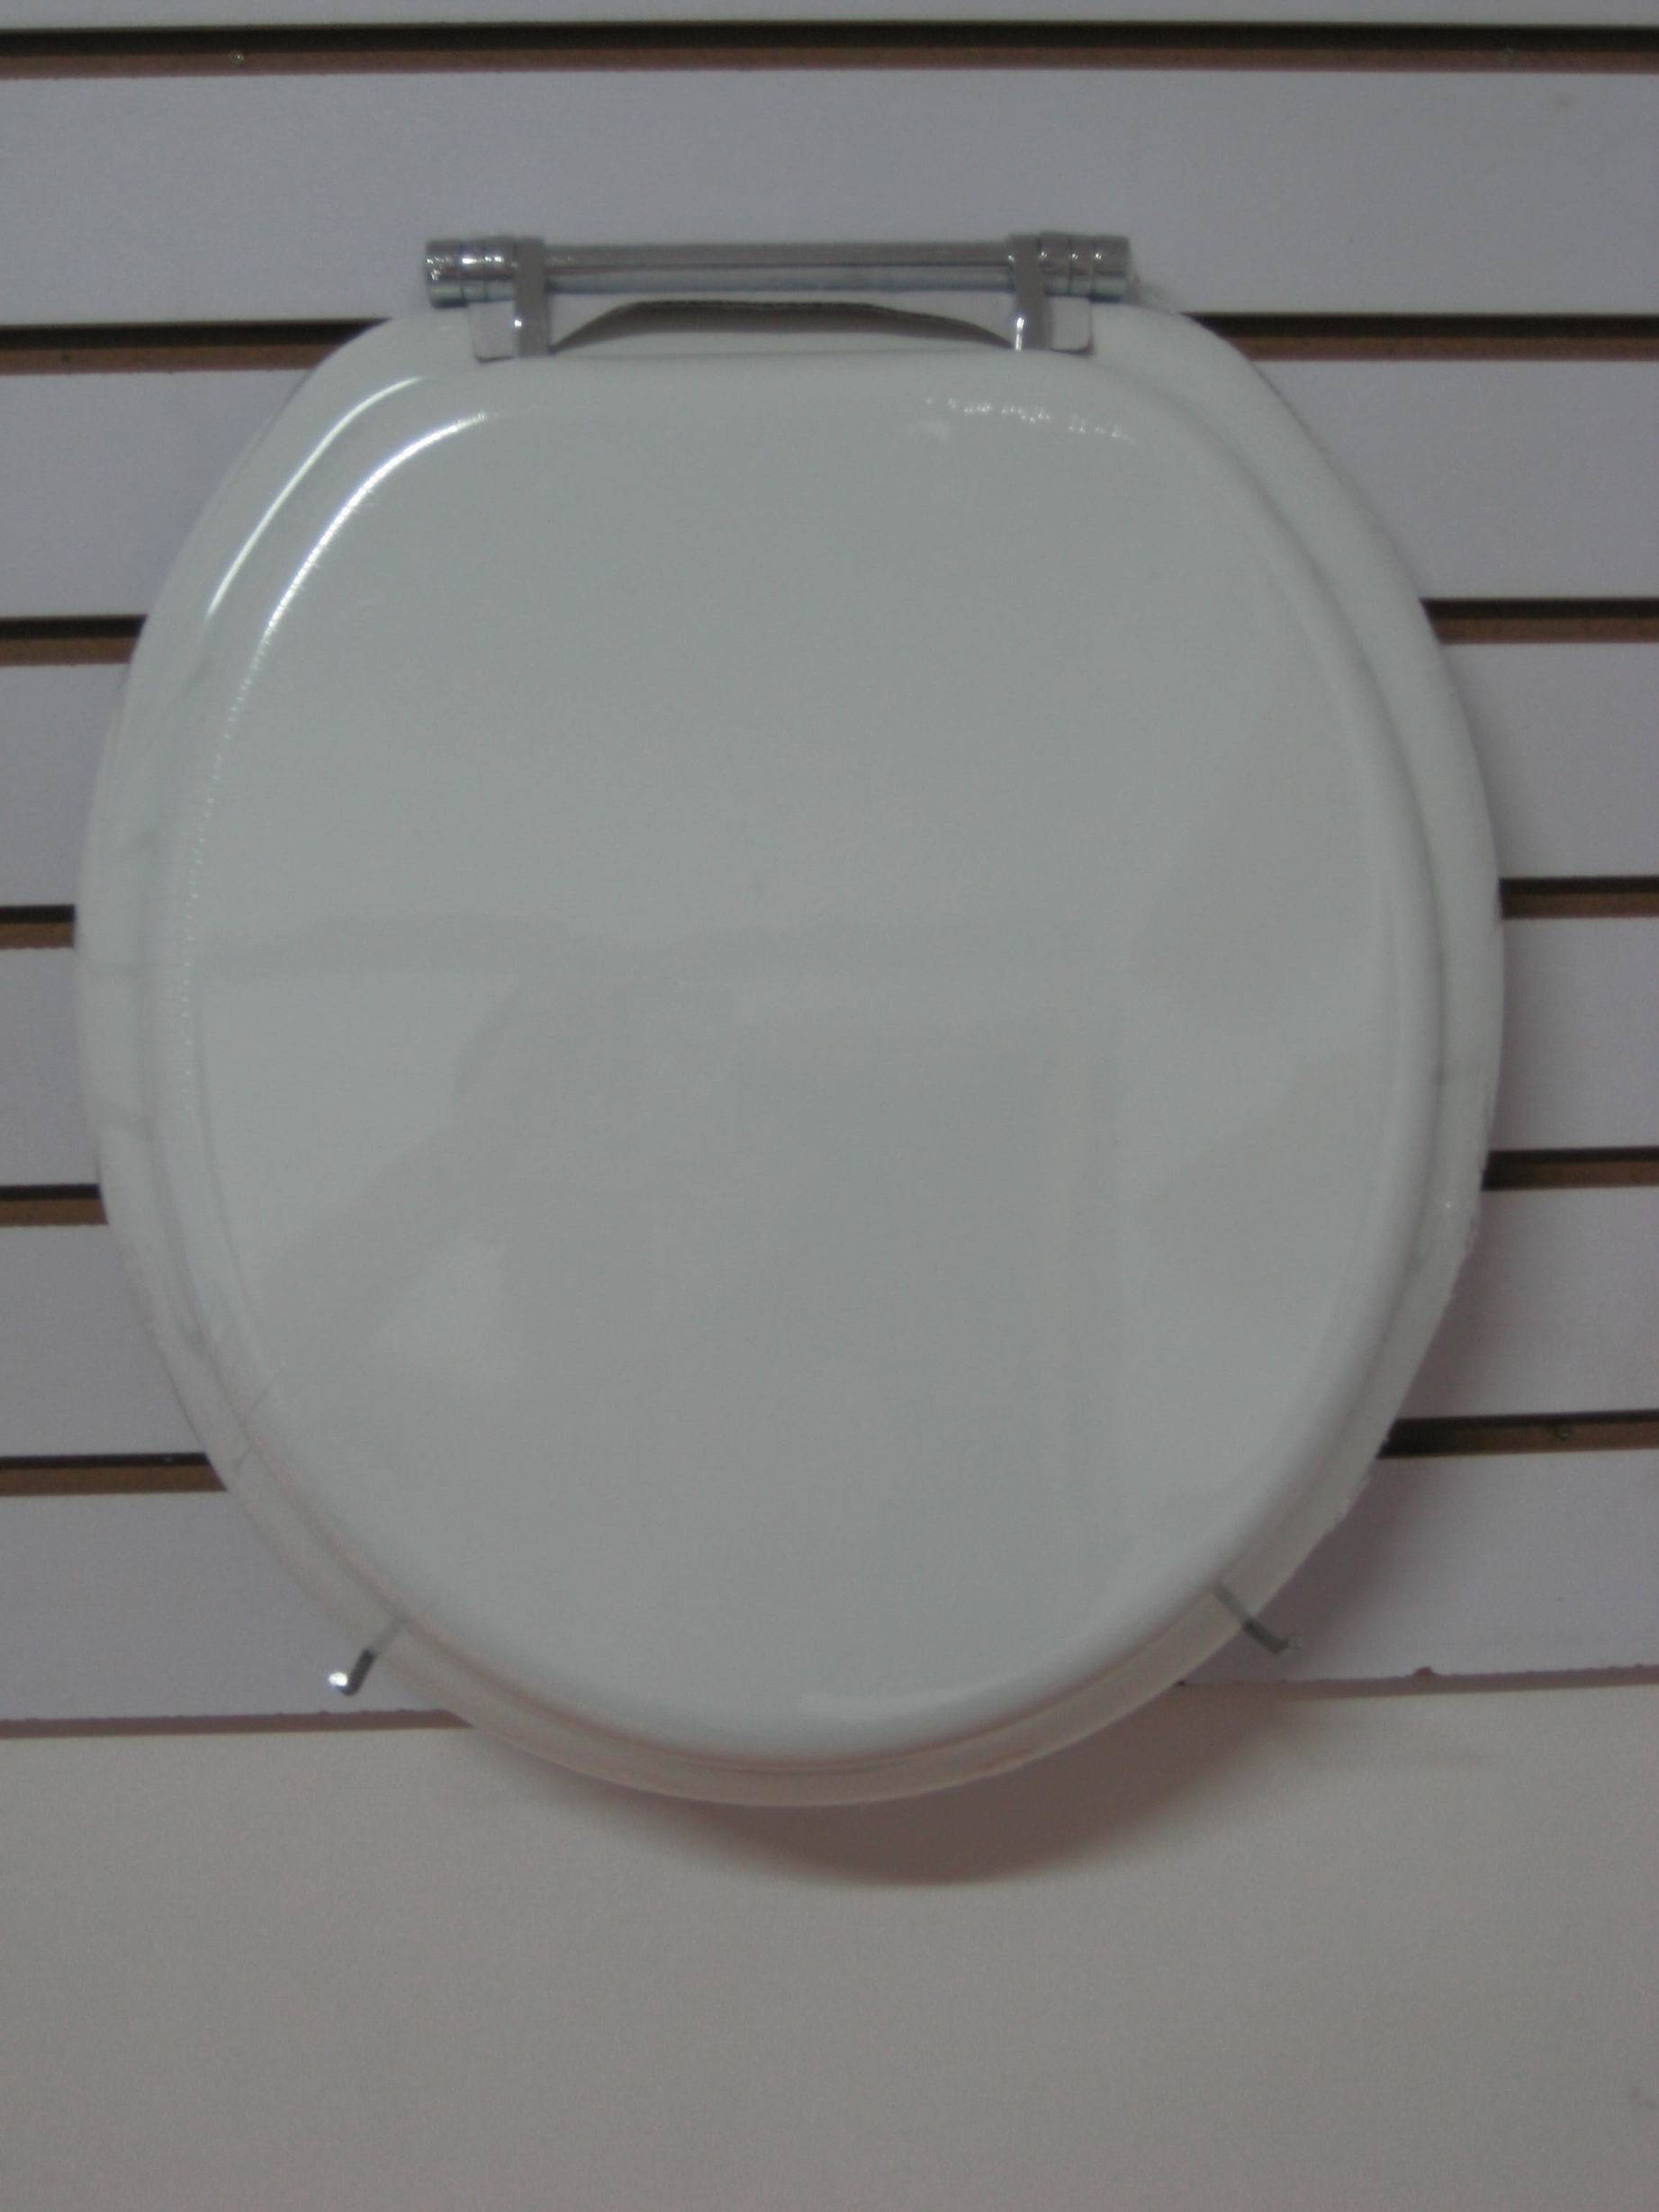 molded toilet seat cover